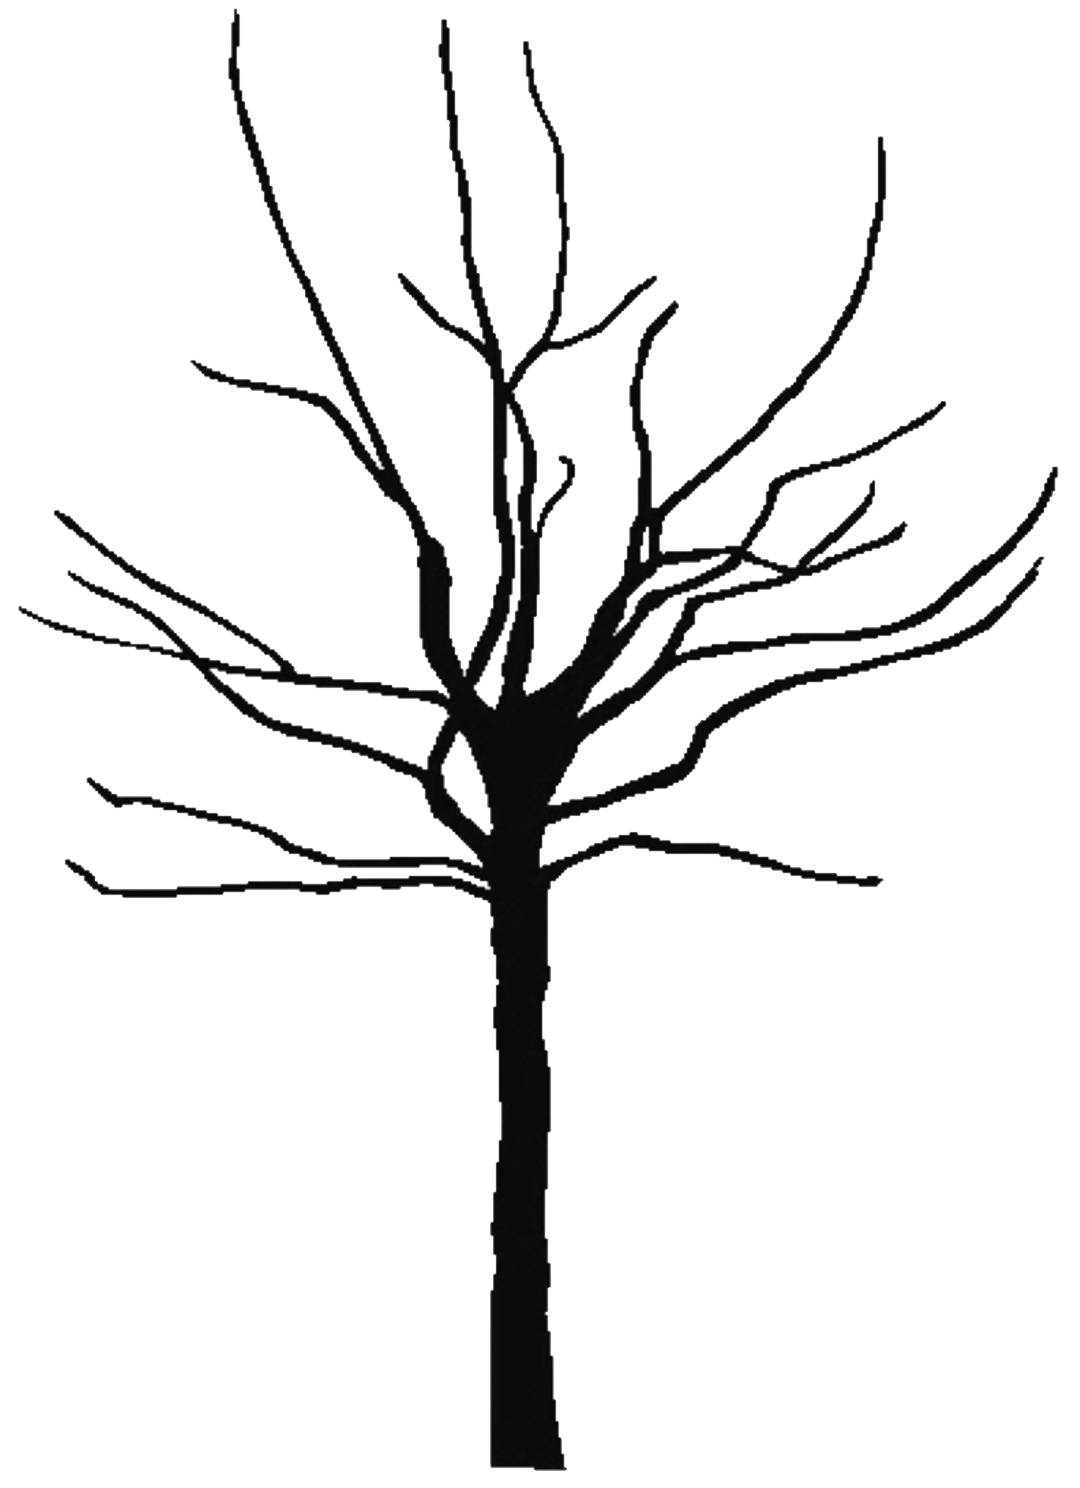 image transparent stock Tree free large images. Bare clipart leaves.